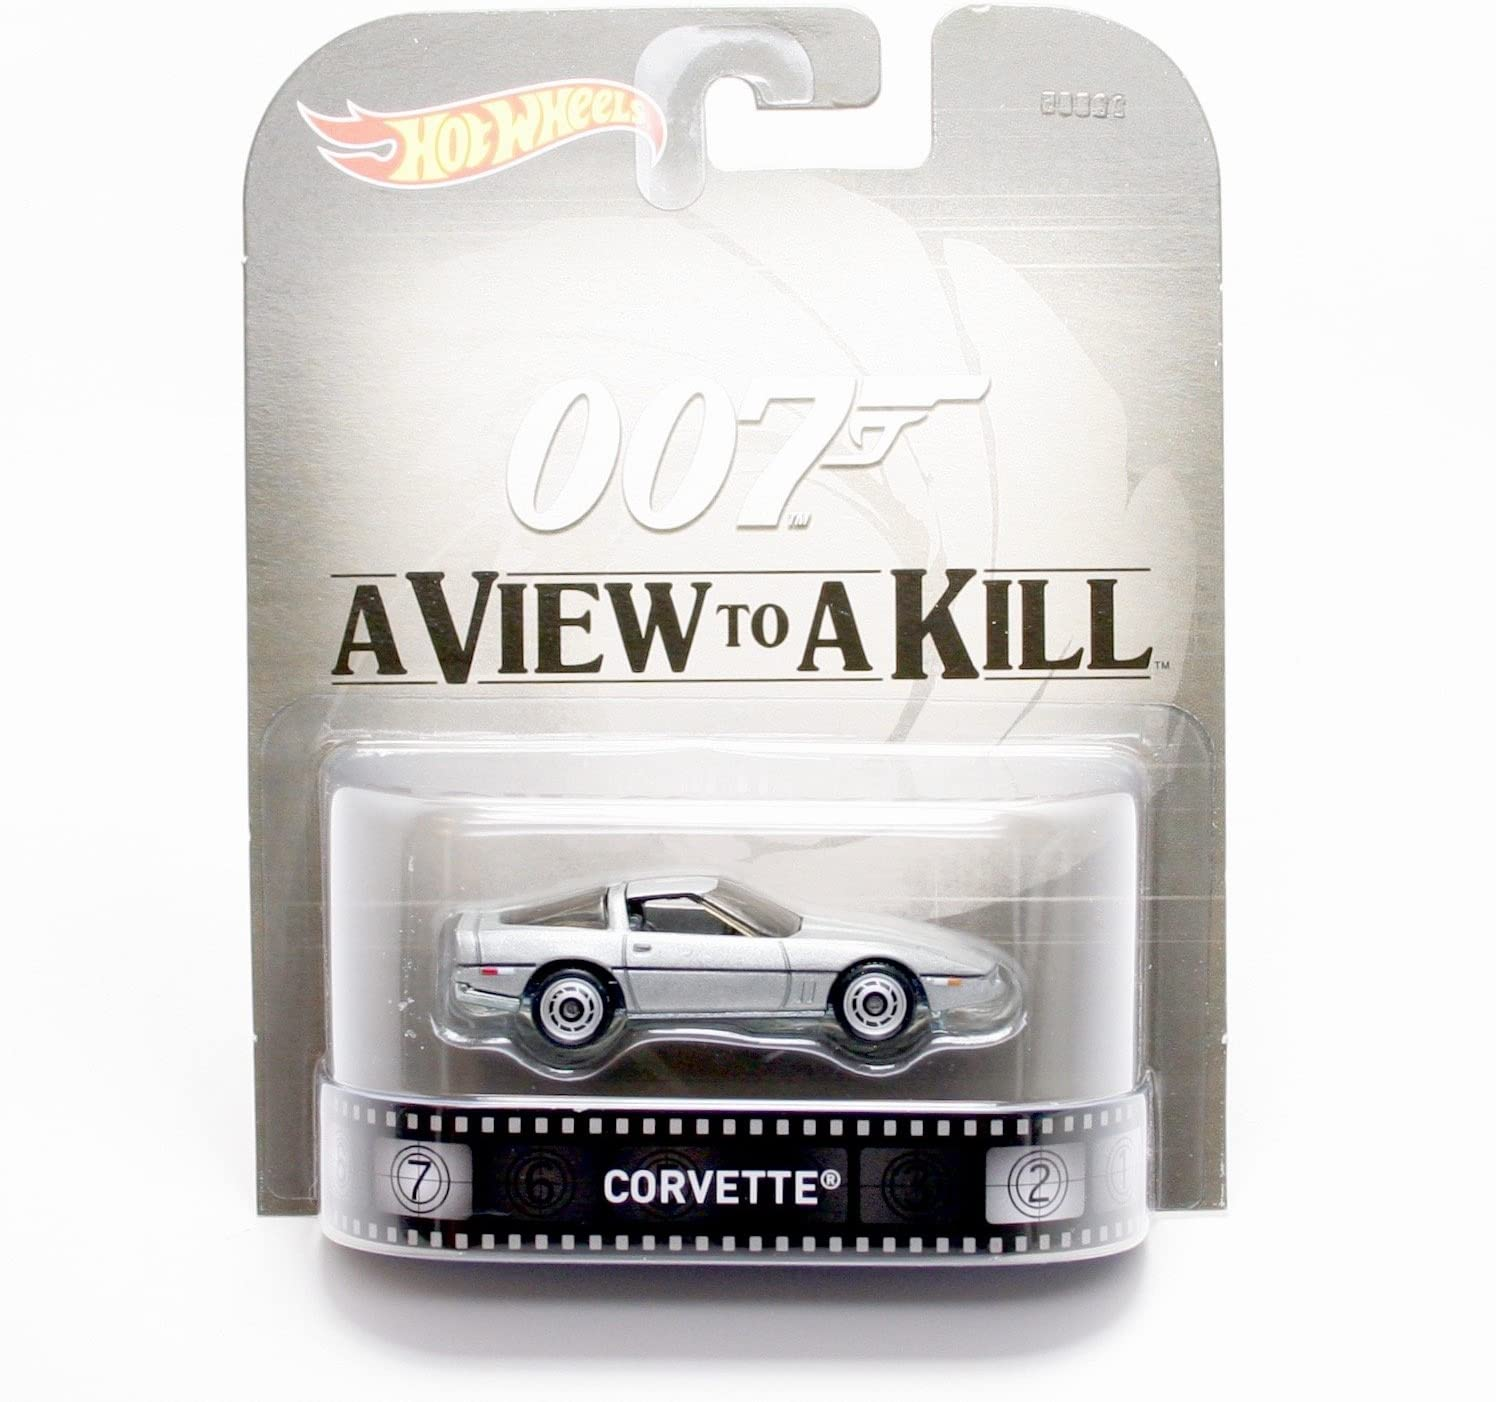 Hot Wheels Corvette James Bond 007